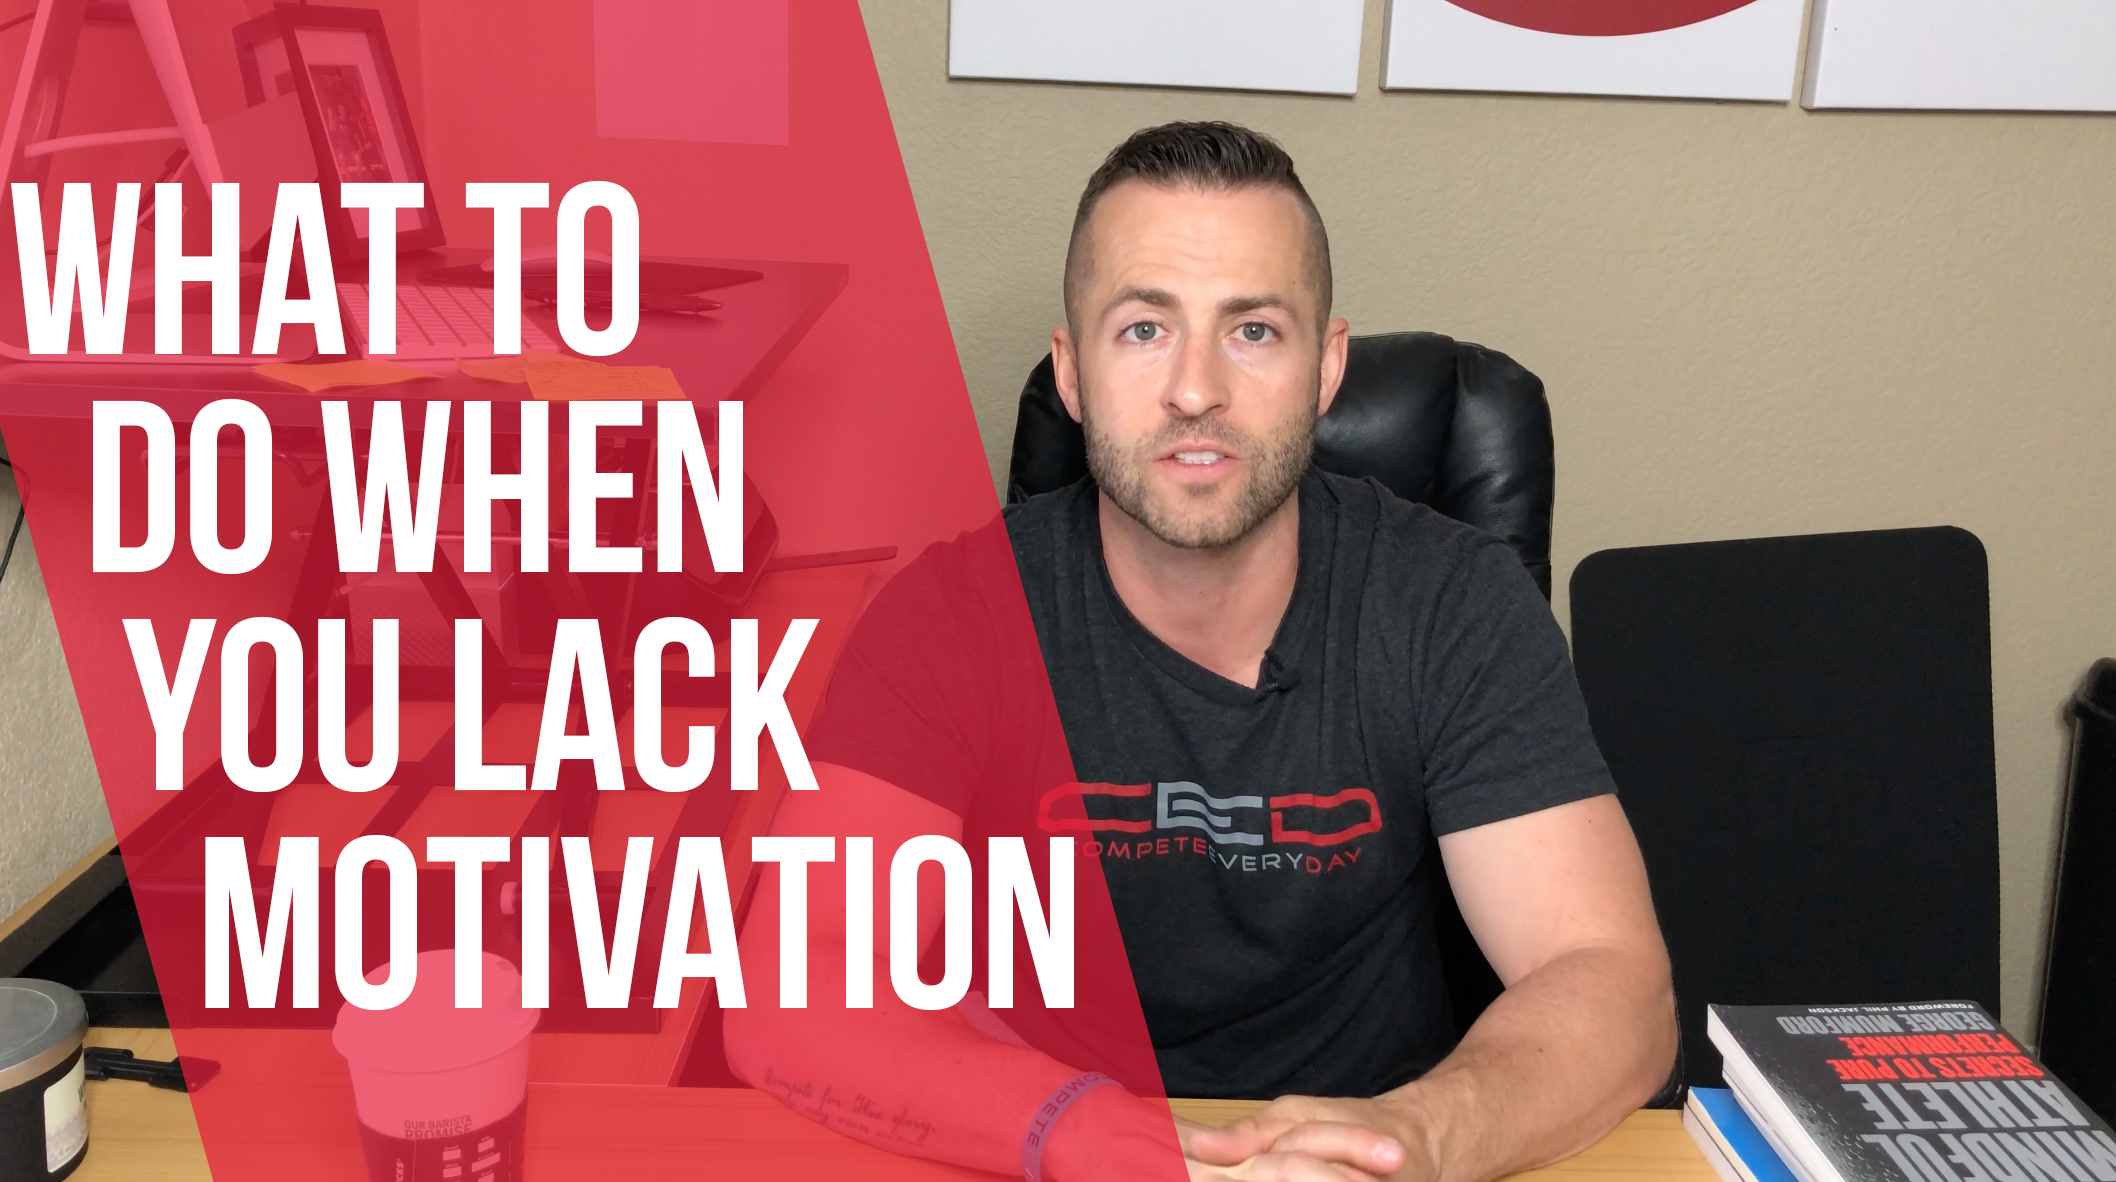 What to do when you lack motivation